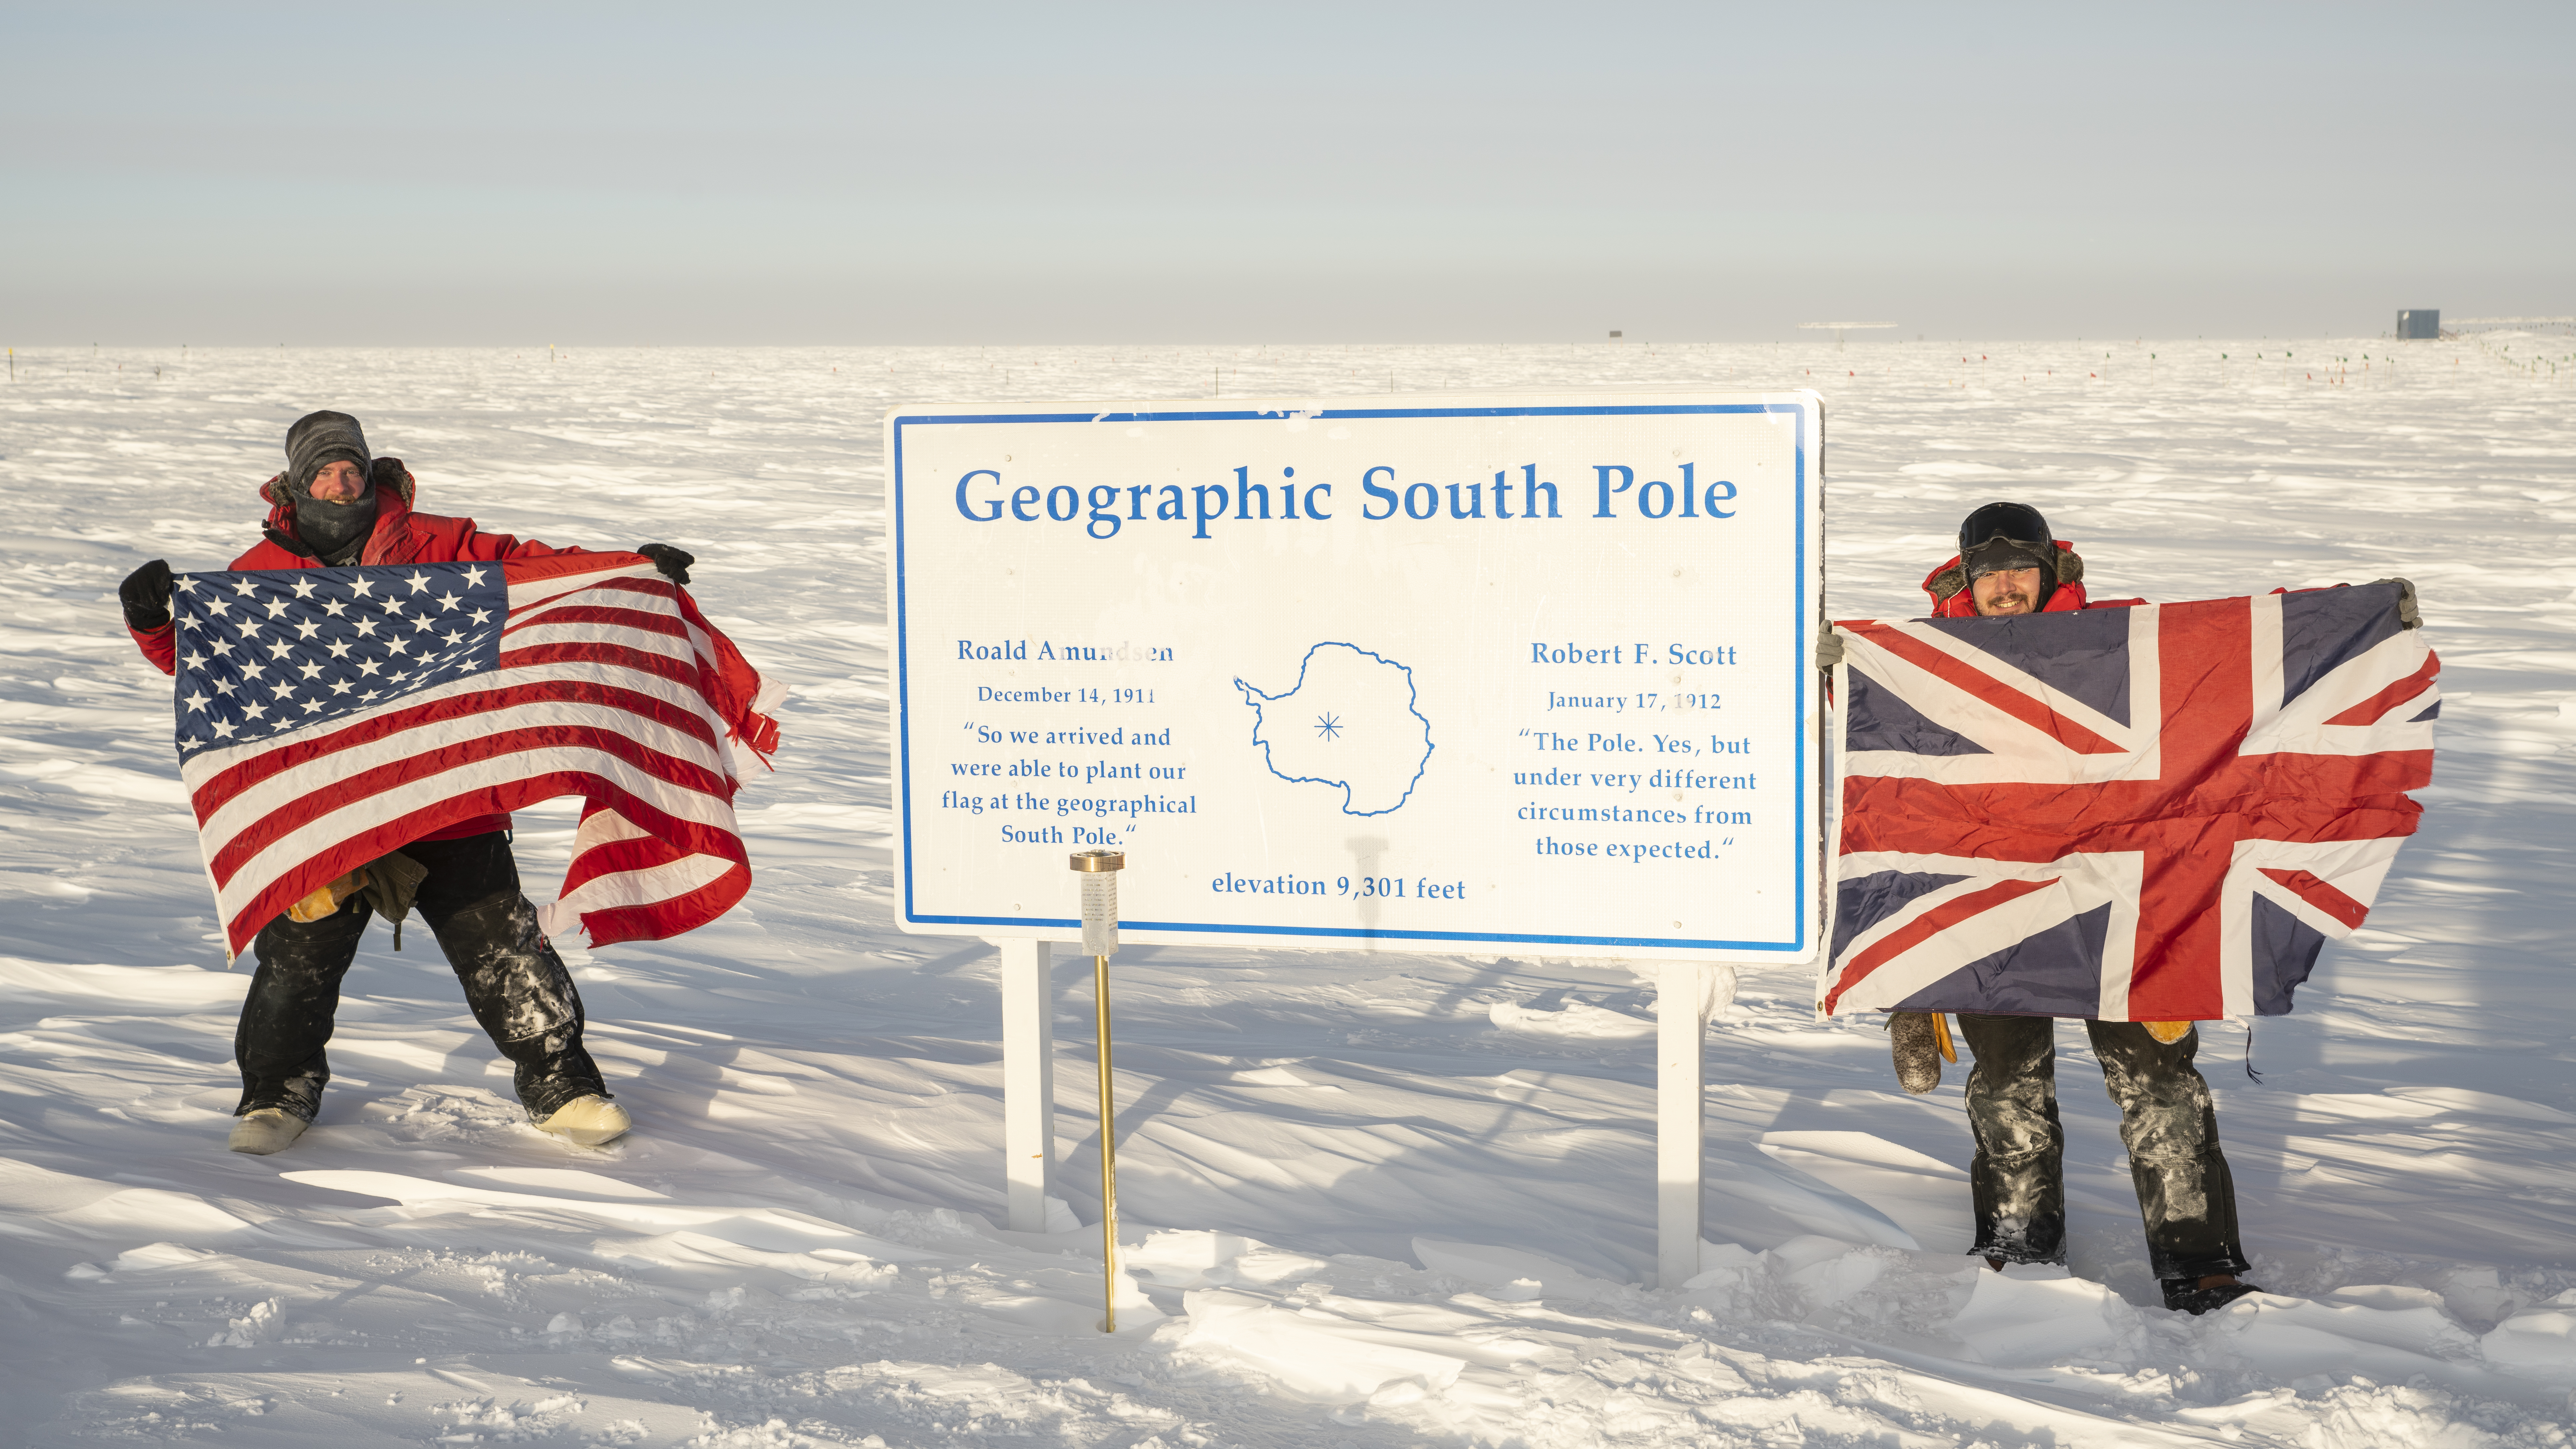 IceCube winterovers holding US and British flags next to geographic South Pole sign.